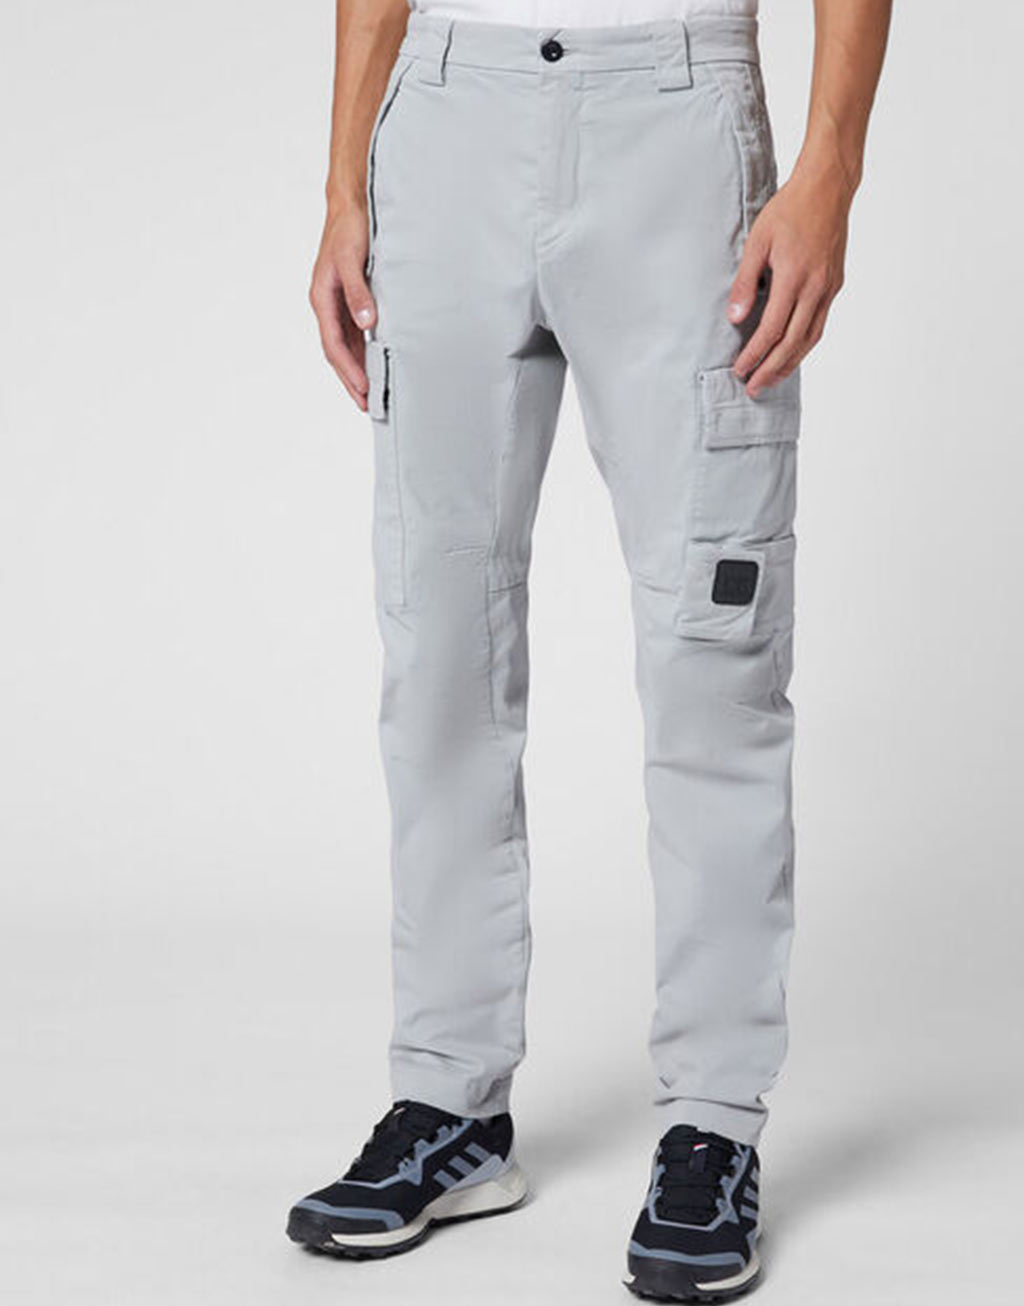 best techwear pants 6